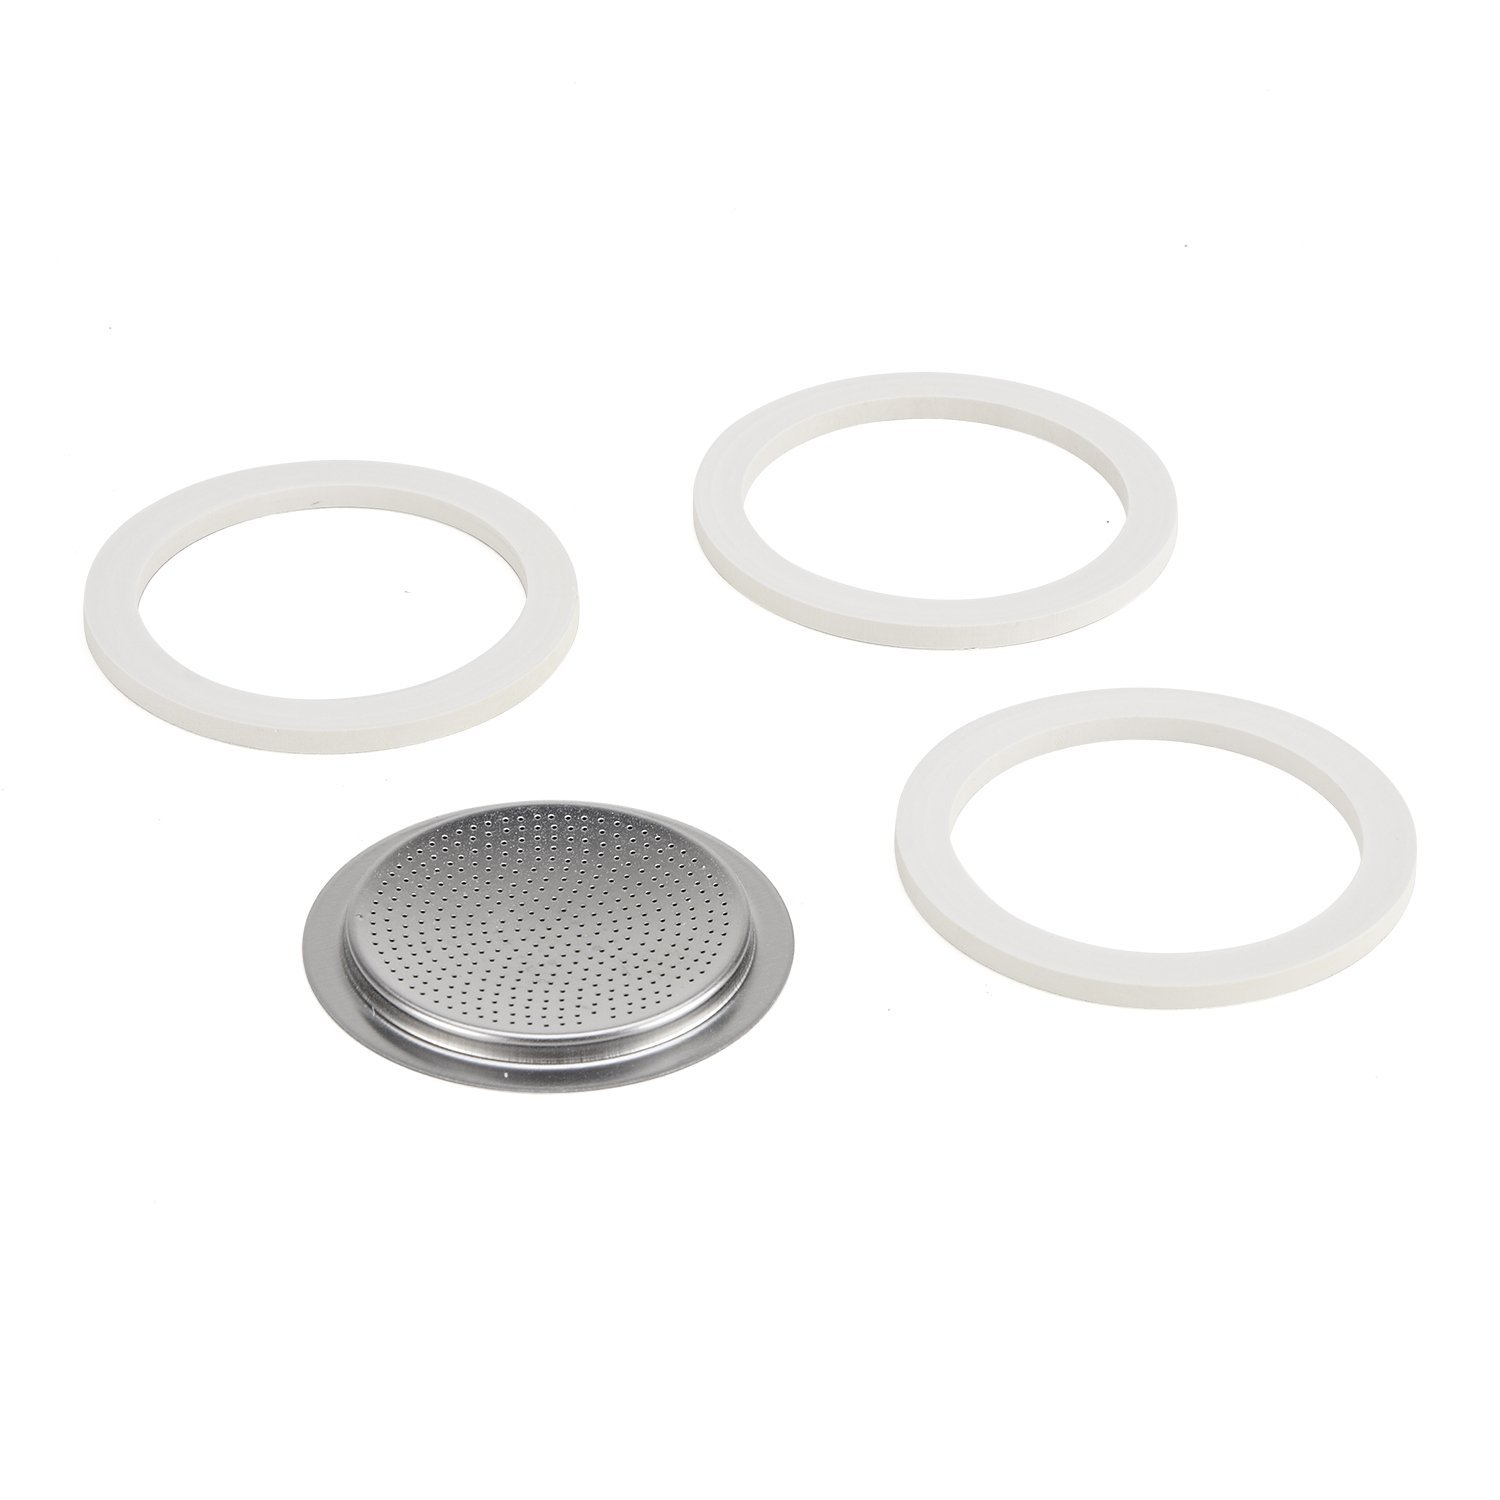 Bialetti Gasket and Filter Set for Stainless Steel Espresso Makers - 4 Cup eBay